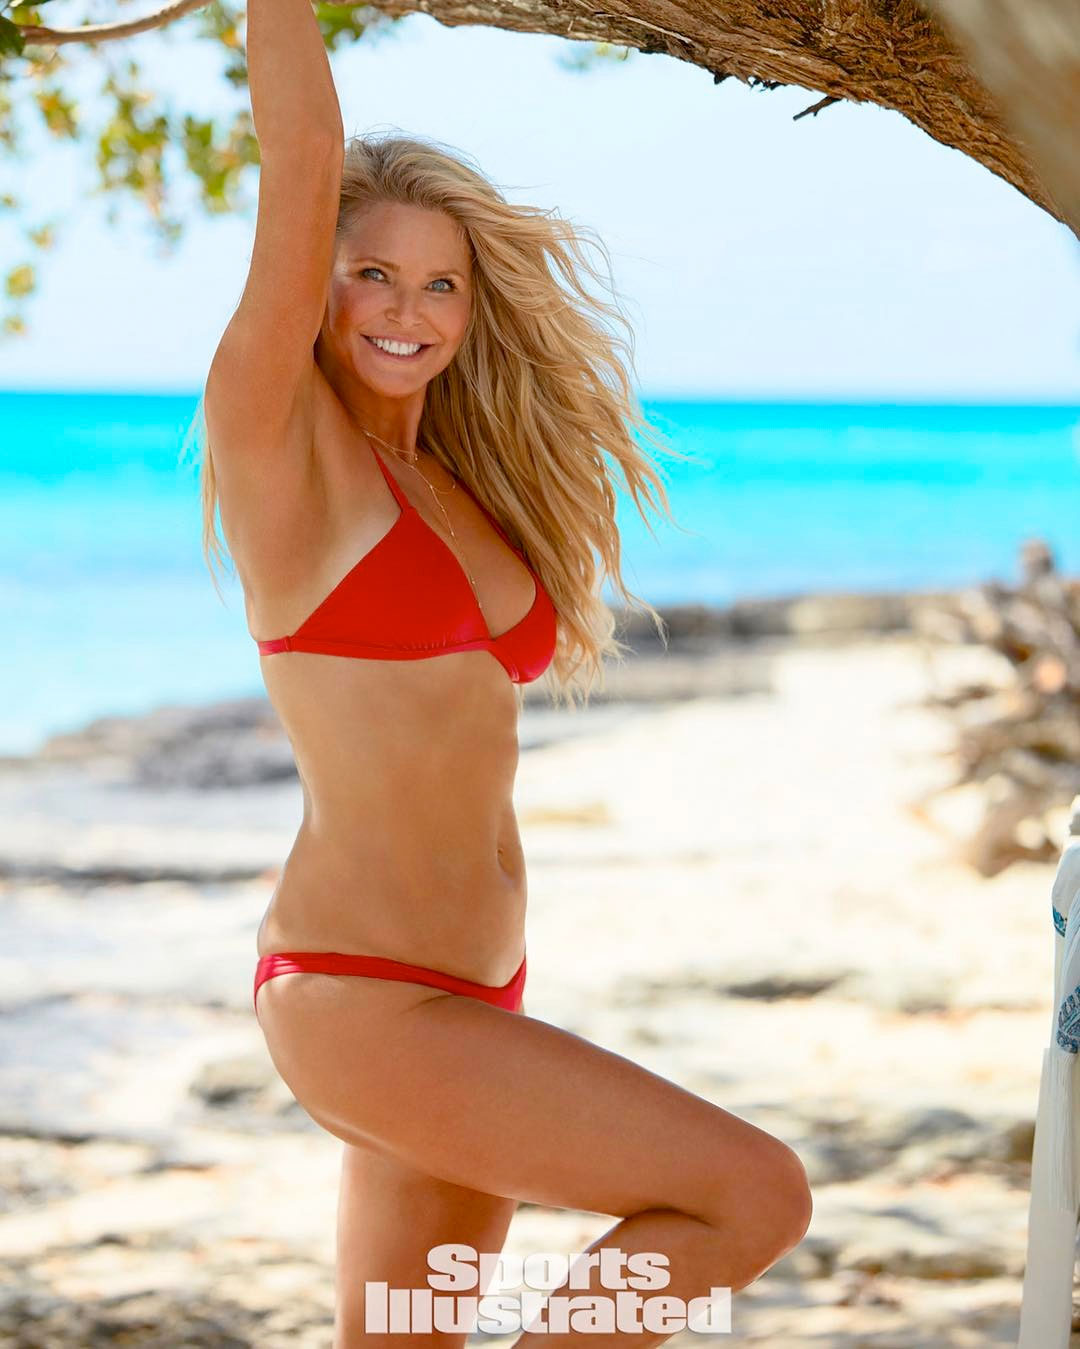 Christie Brinkley returns to the cover of Sports Illustrated